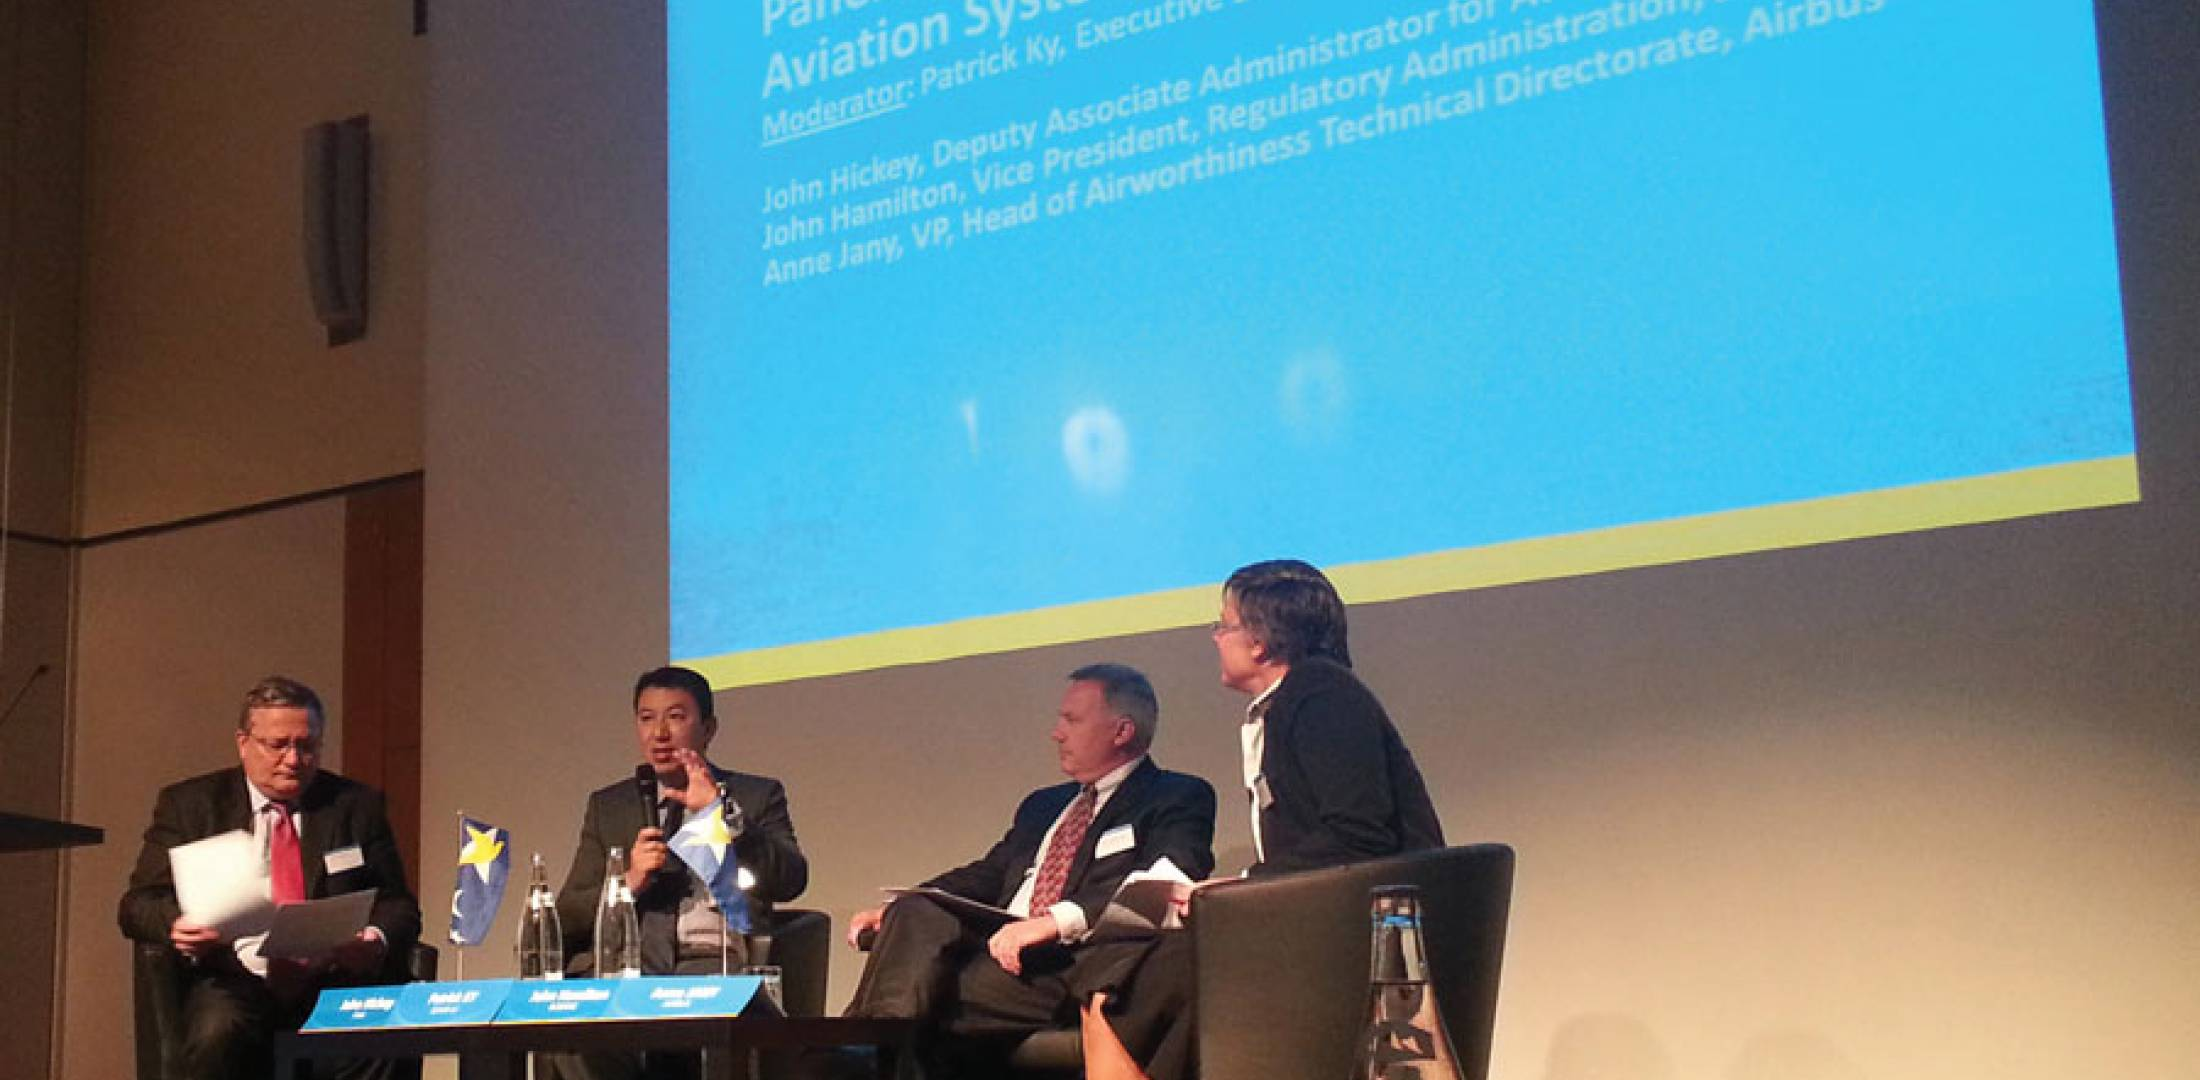 Paris EASA/FAA Conference Sees Calls For Greater